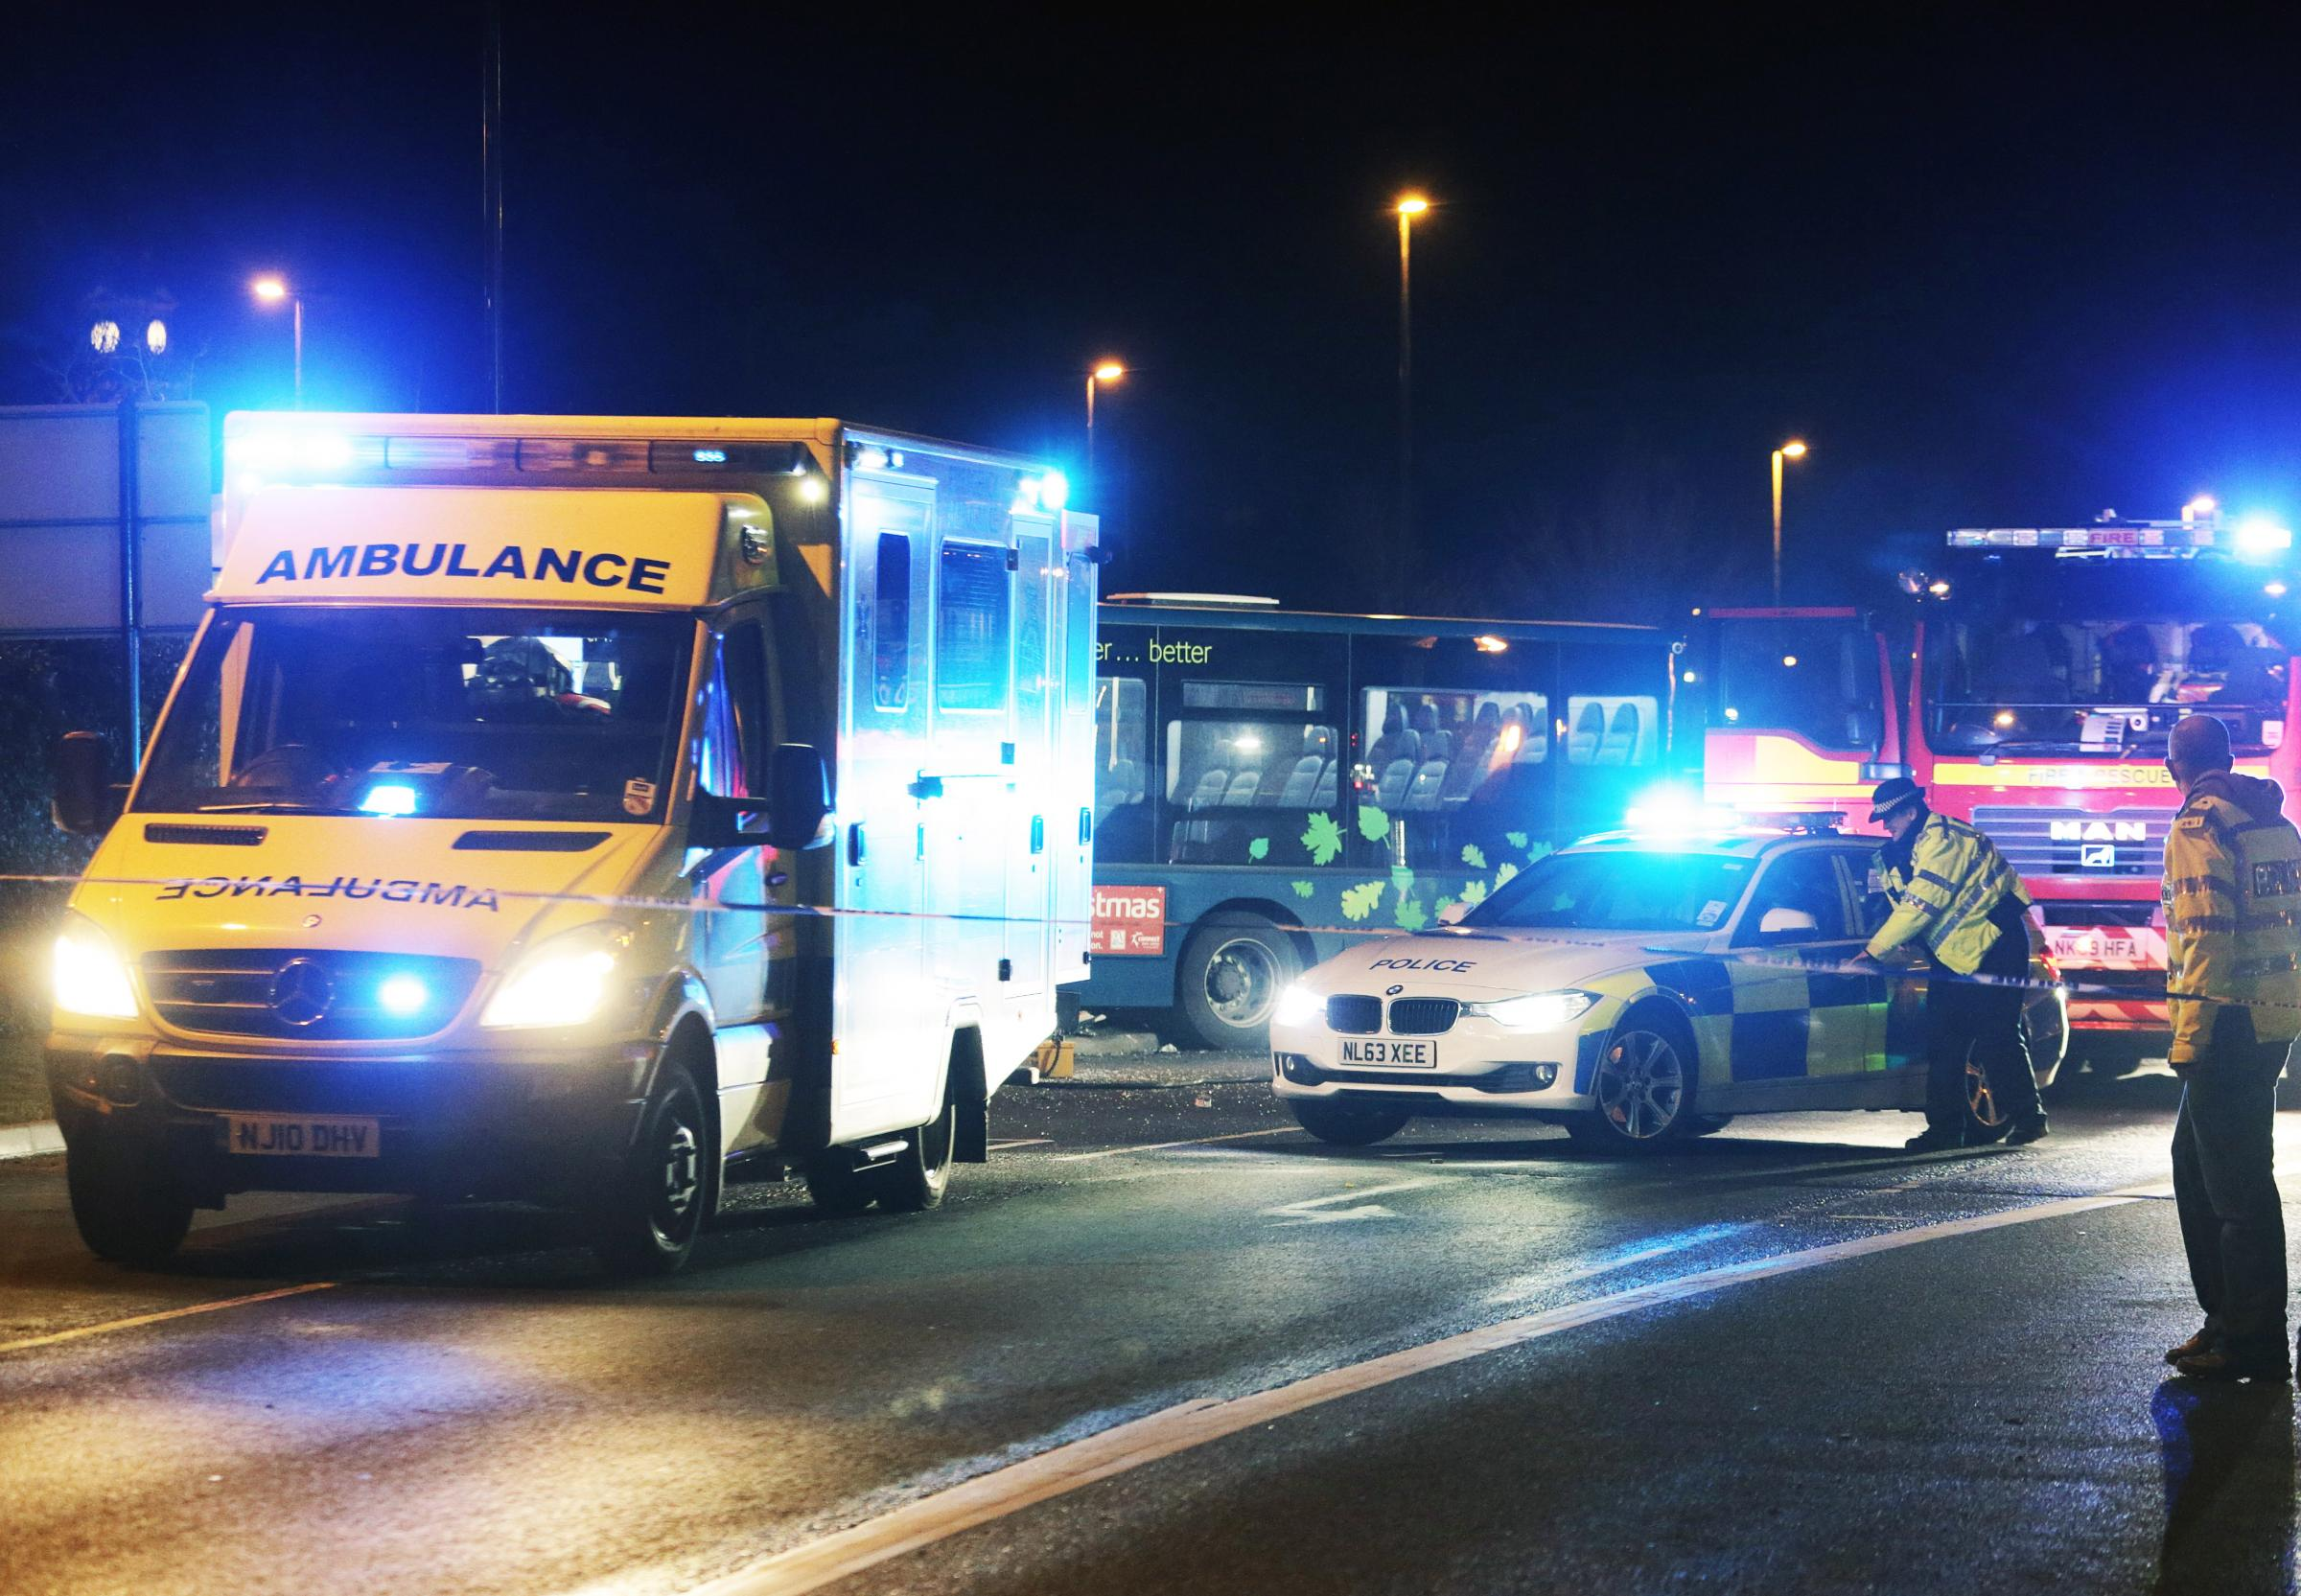 CRASH SCENE: Emergency services at the scene of the fatal collision in Darlington on Saturday evening